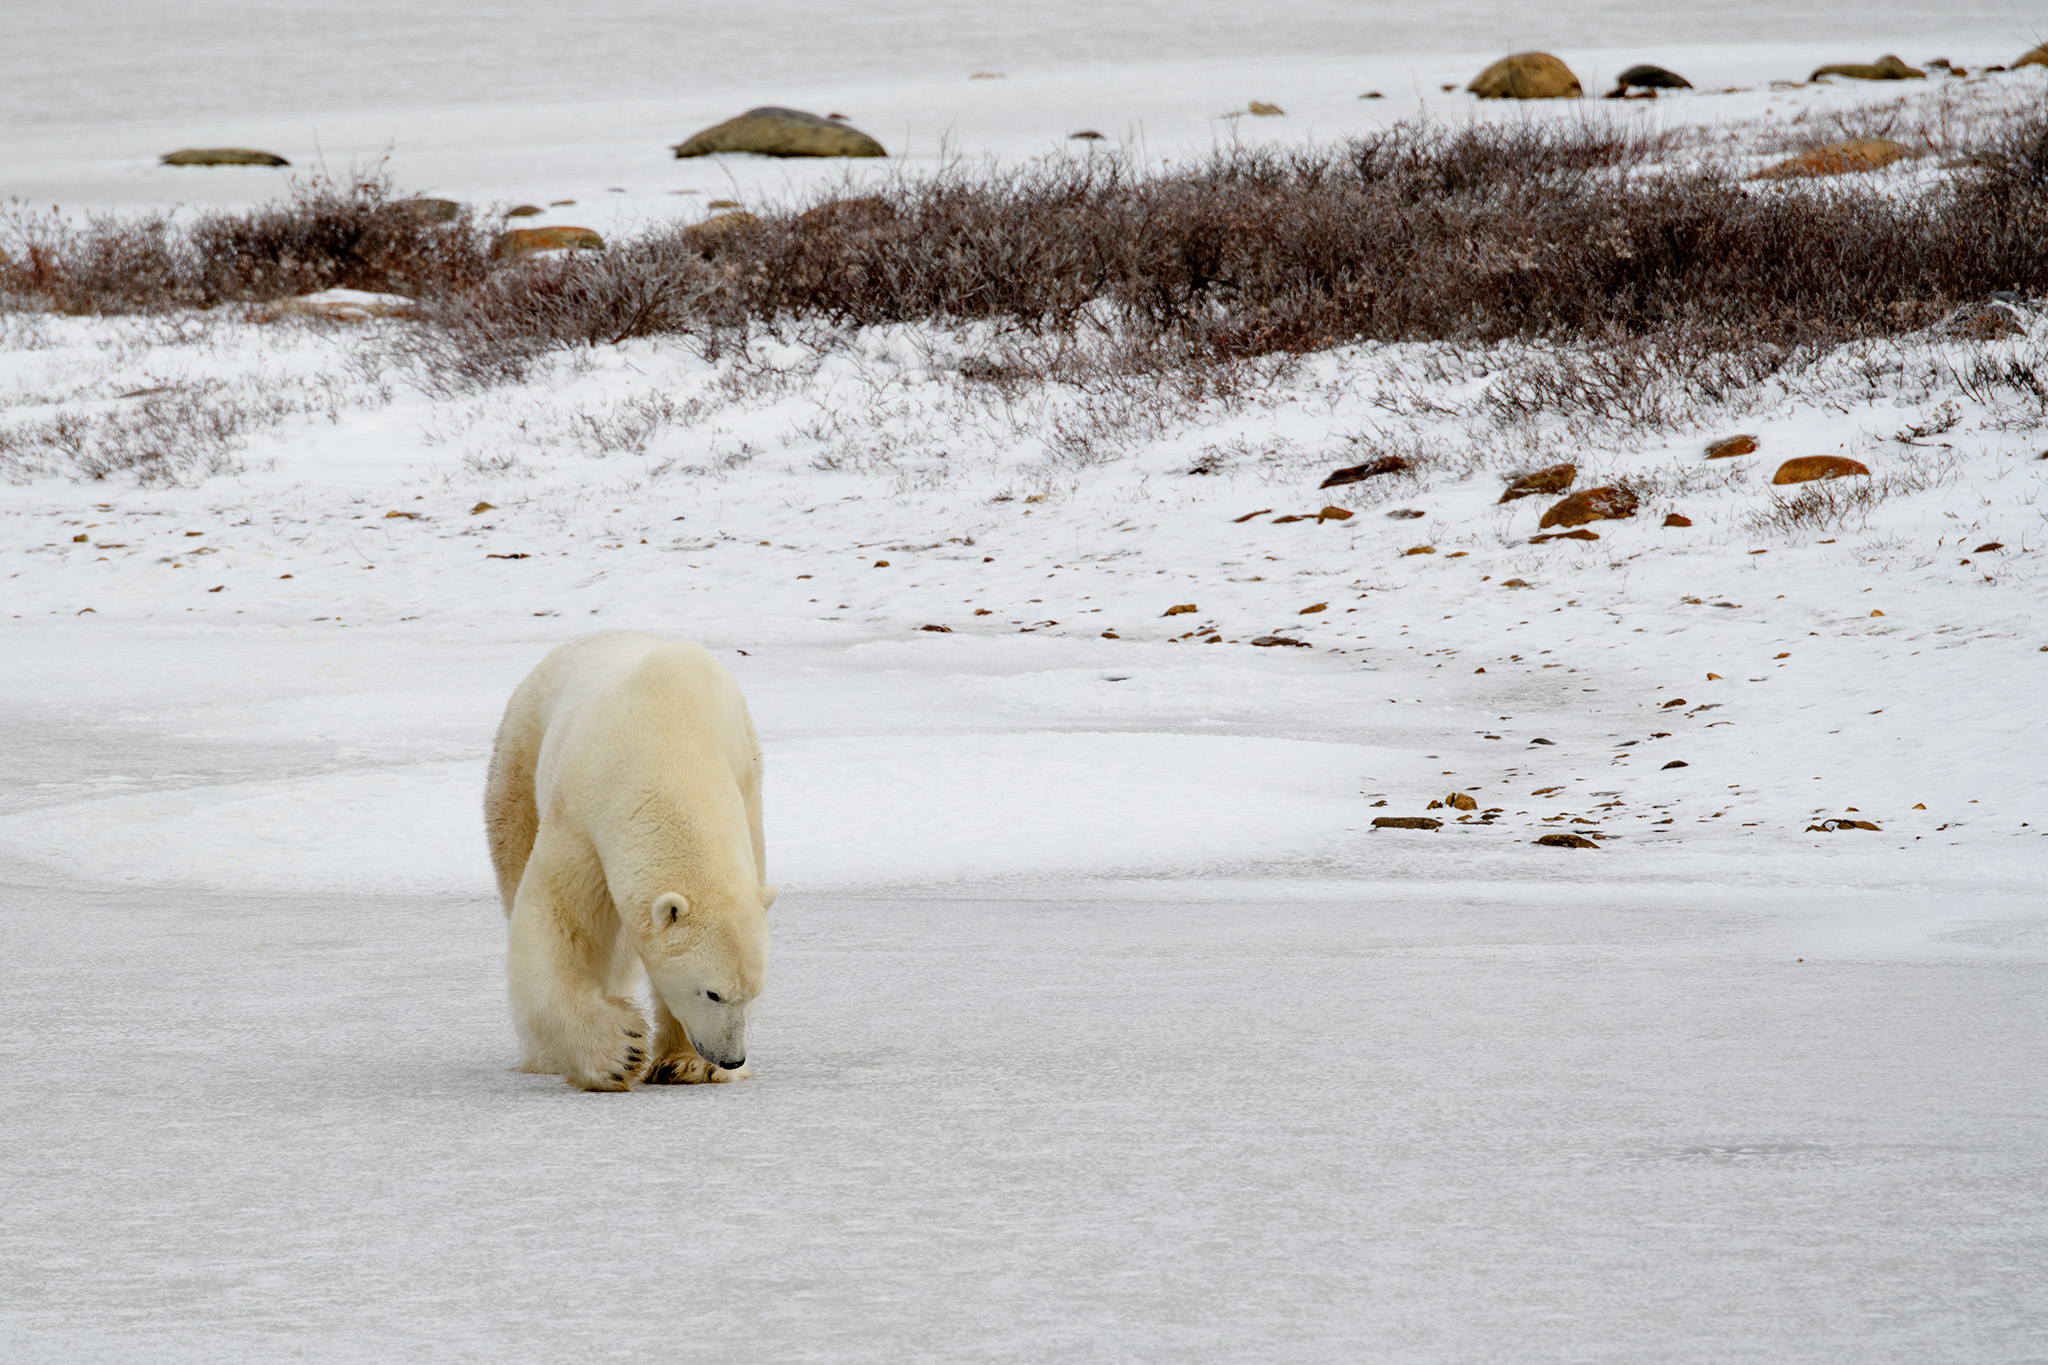 The male bear continued to follow his nose towards the female bear.